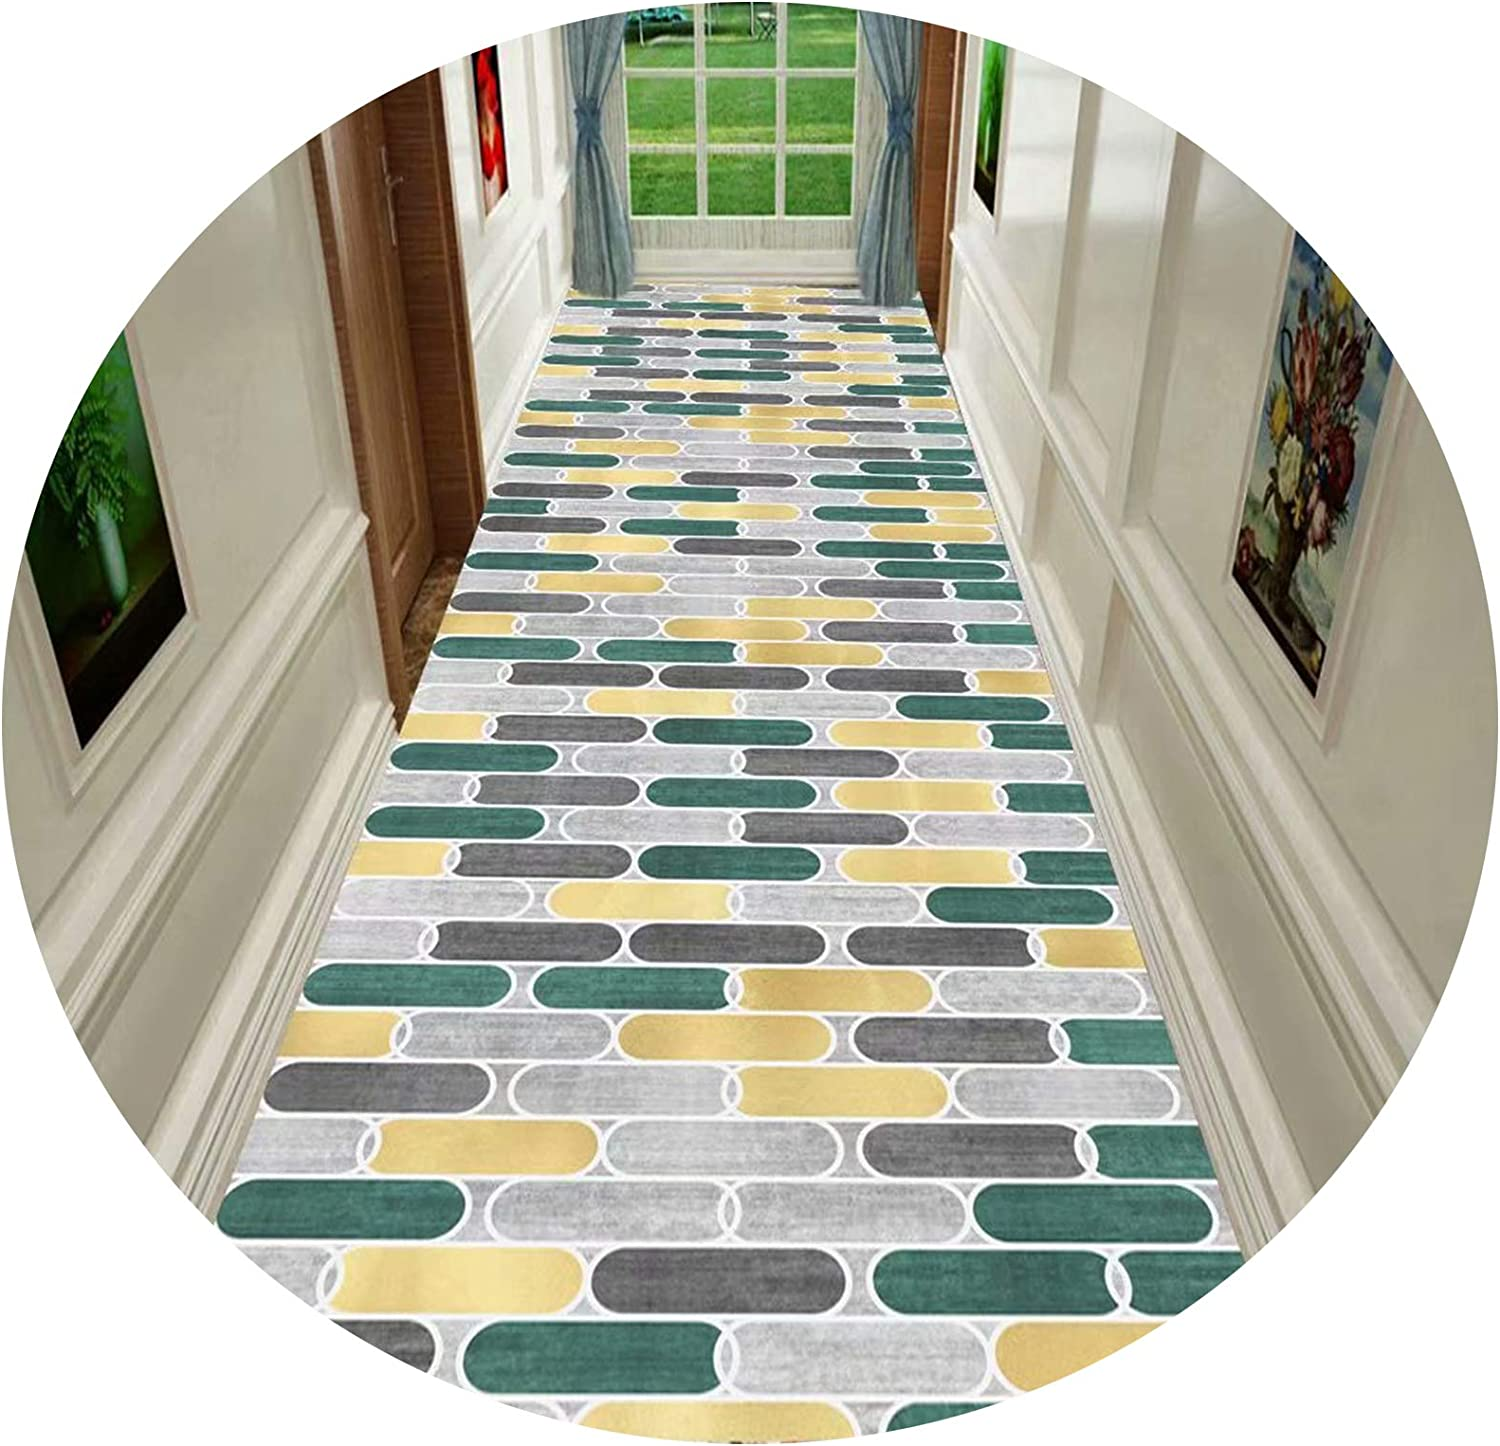 Aon-MX 3D Washable Runner Rug for Max 73% OFF with 6mm Entrance Max 46% OFF Hallway Mat